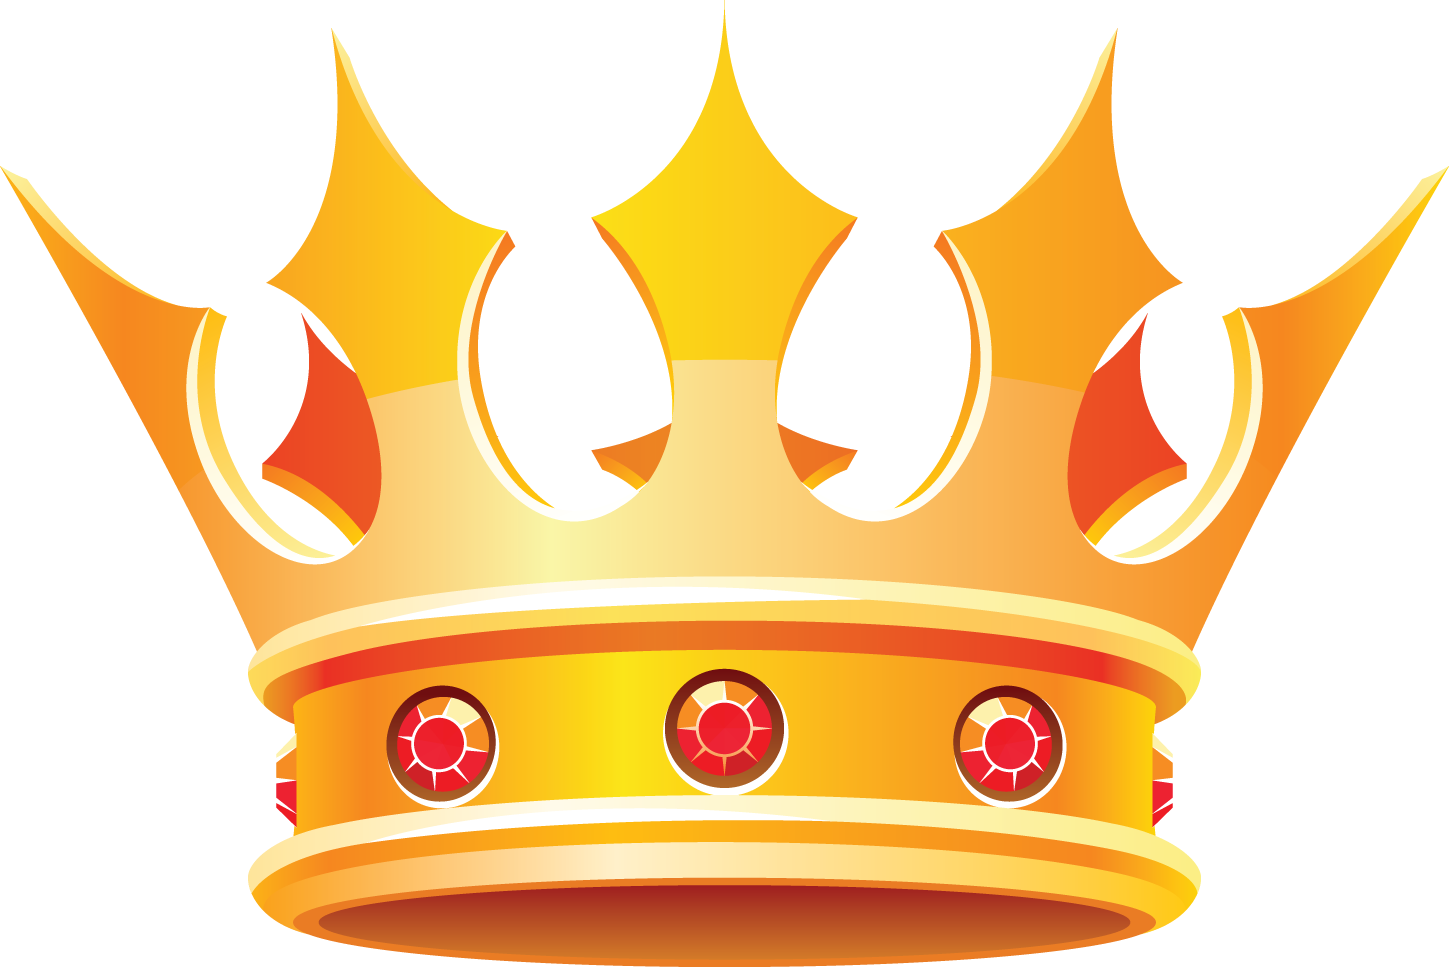 king queen crown clip art prince princess party pinterest rh pinterest co uk king crown clip art image king crown clip art image